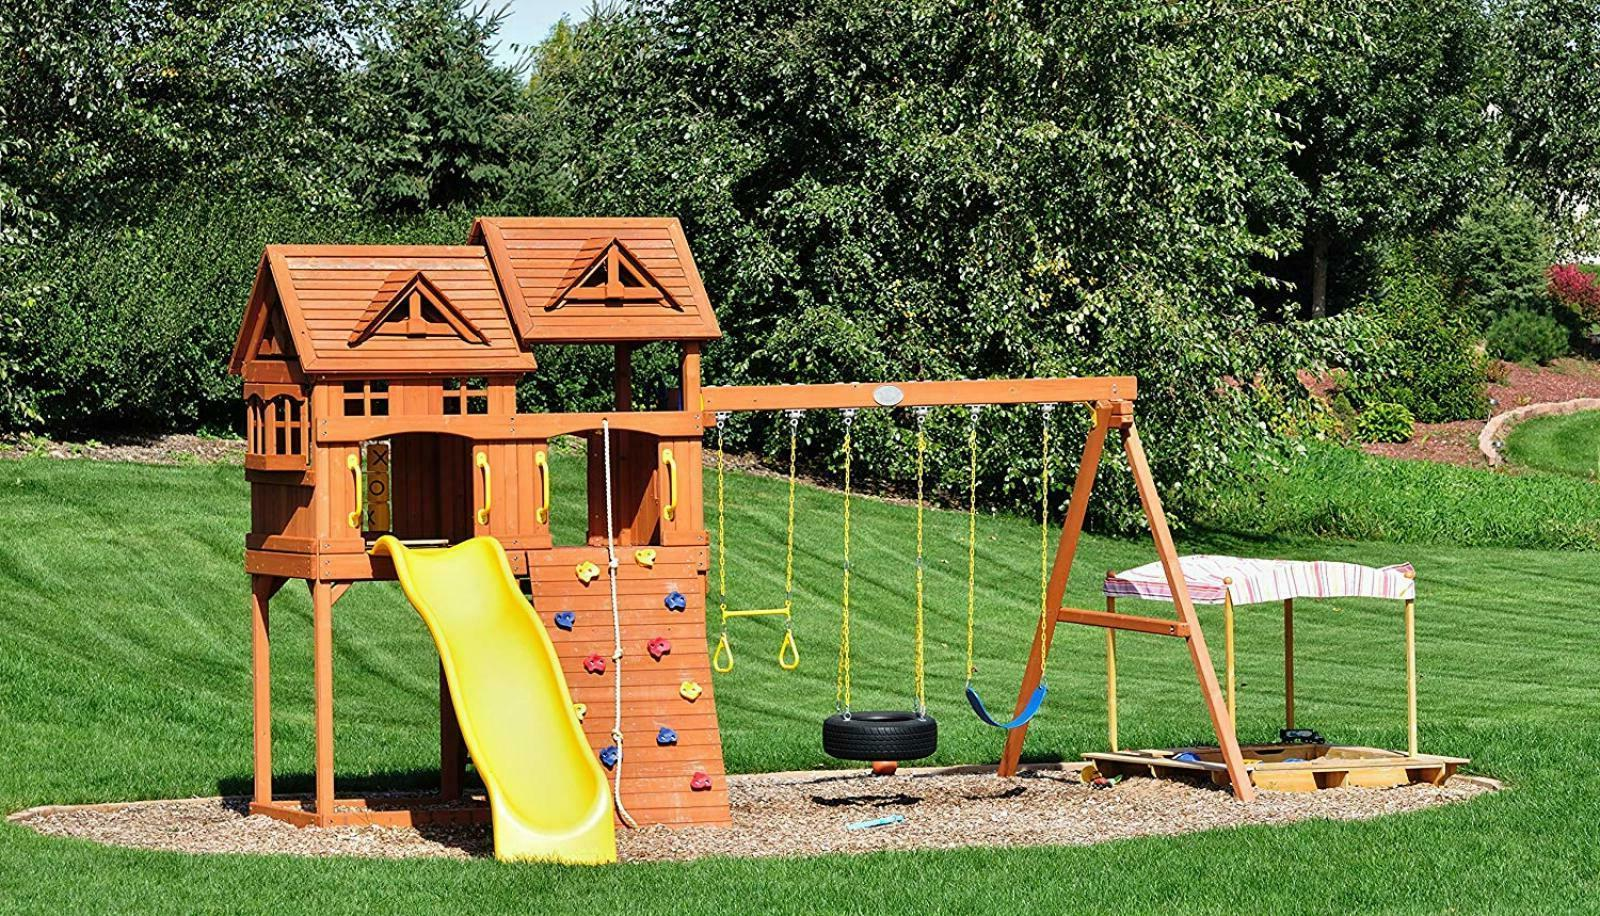 JGS 1800 Heavy Duty - Hanging Porch, Swingset,